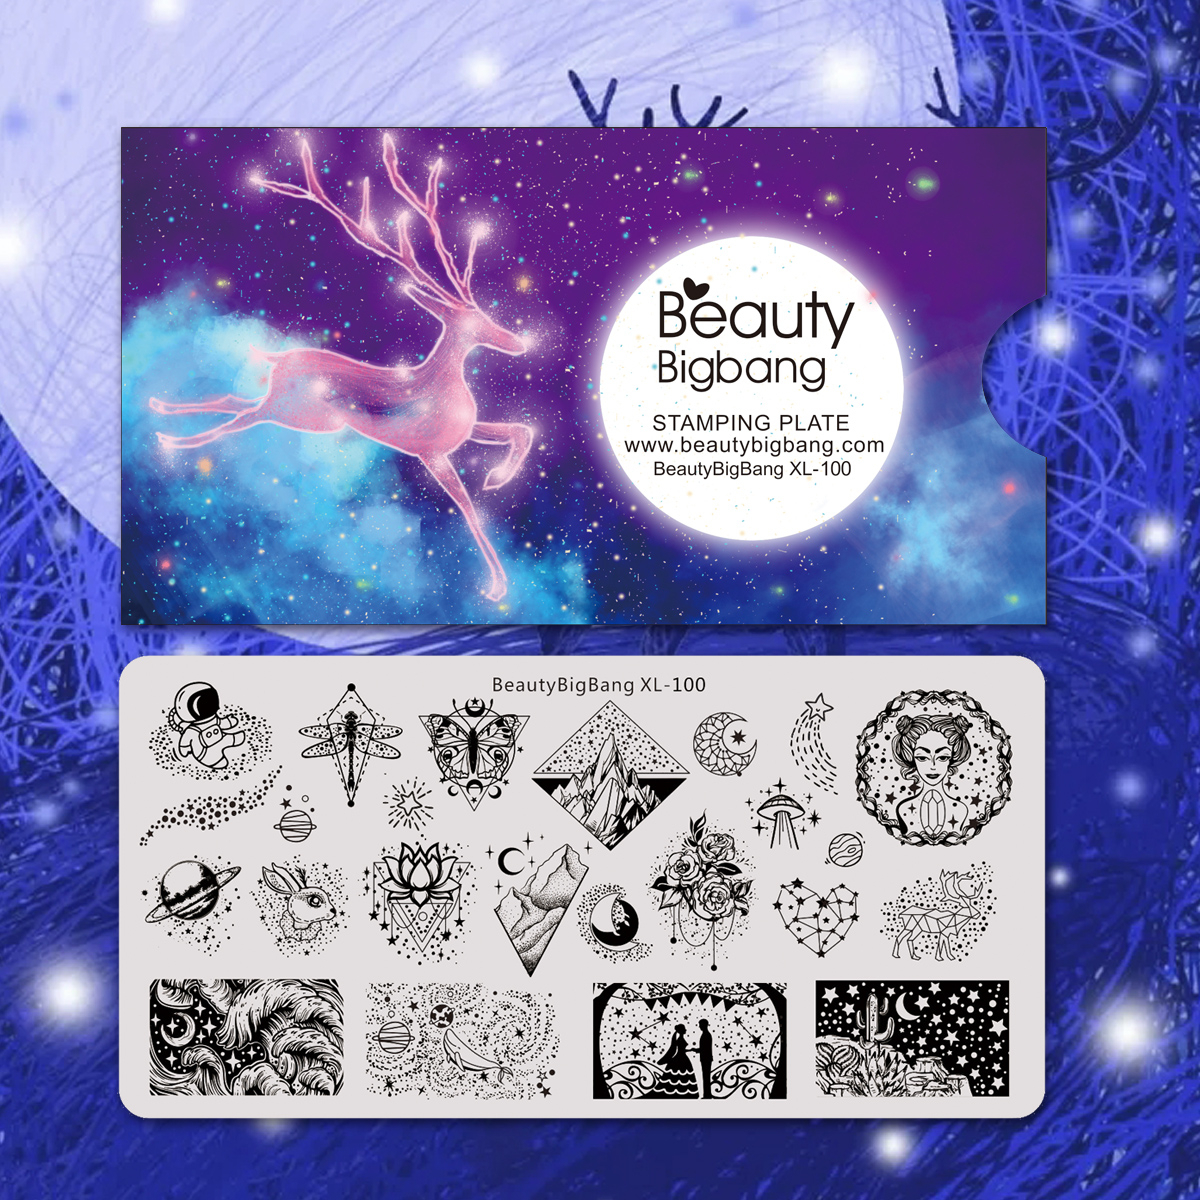 Beauty Bigbang Nail Stamping Plates Star Moon Rabbit Points Image Template For Nails Art Accessories Starry Sky Stencil XL-100